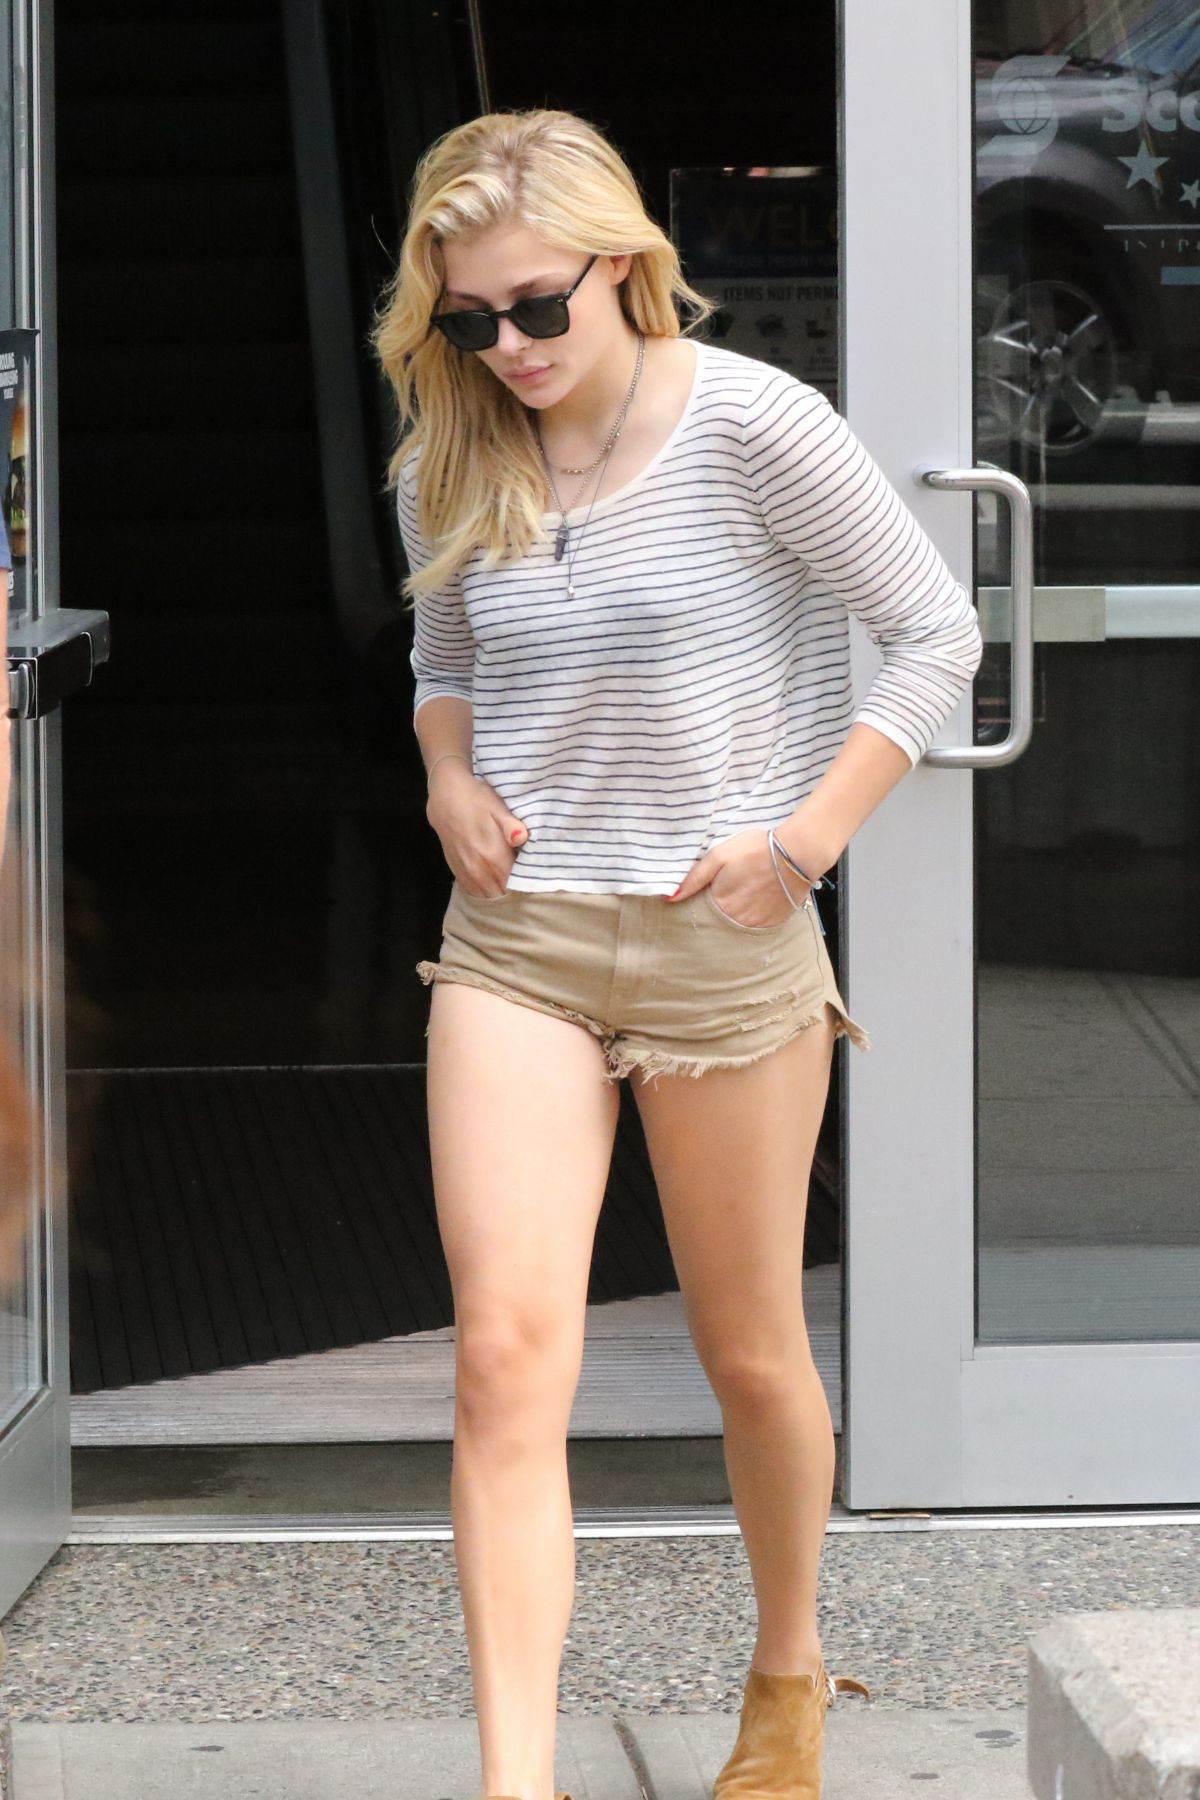 chloe moretz in shorts out and about in vancouver 07 25 2015 1